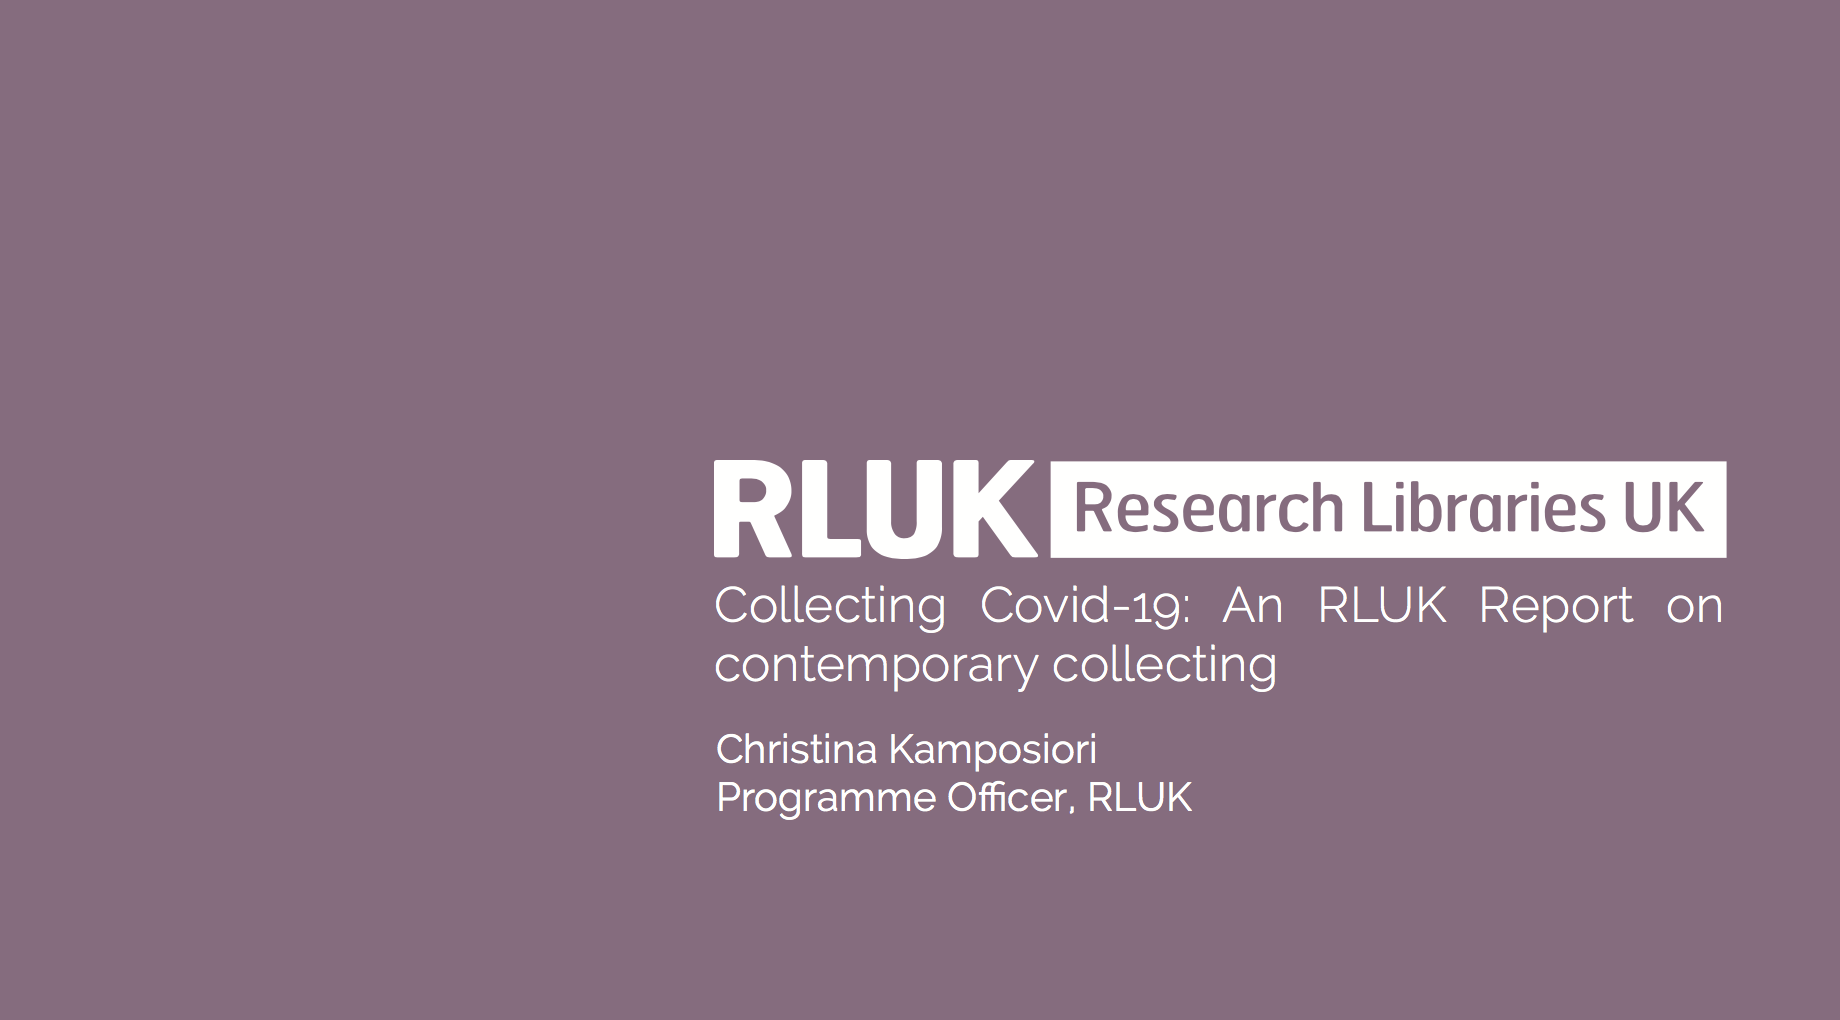 Collecting Covid-19: an RLUK report on contemporary collecting